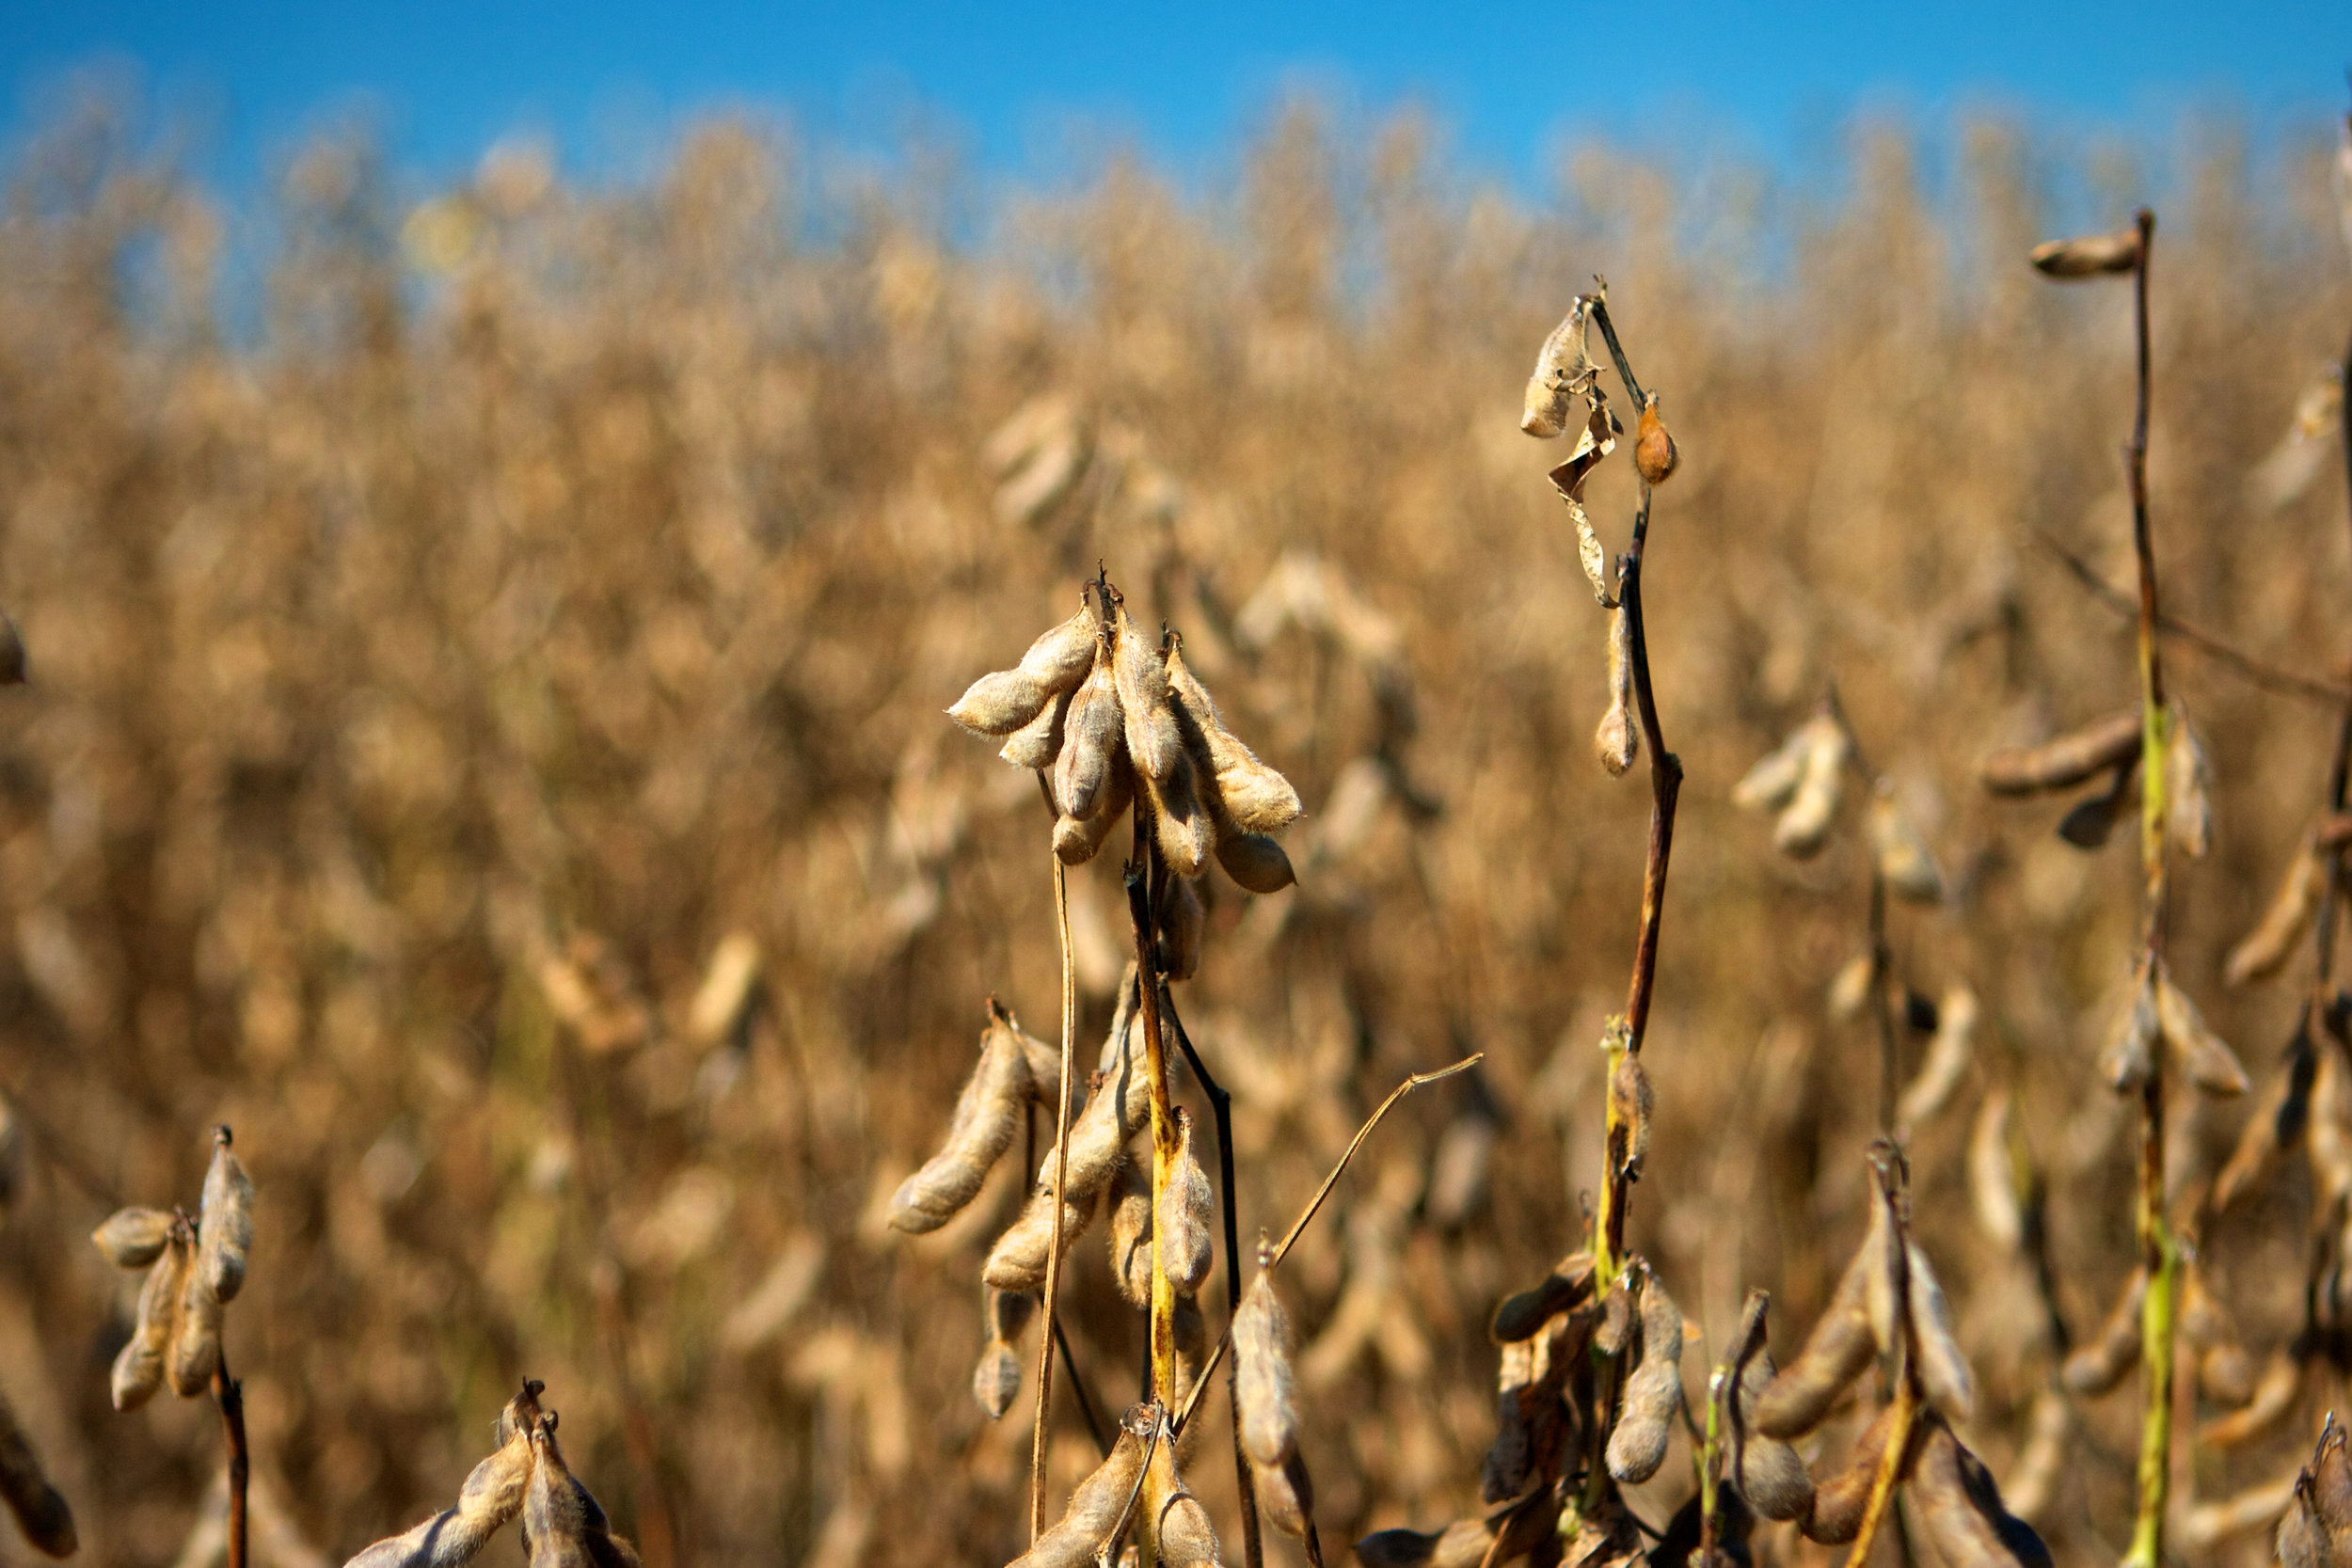 SquarespaceImage19-soybeans-readyforharvest.jpg